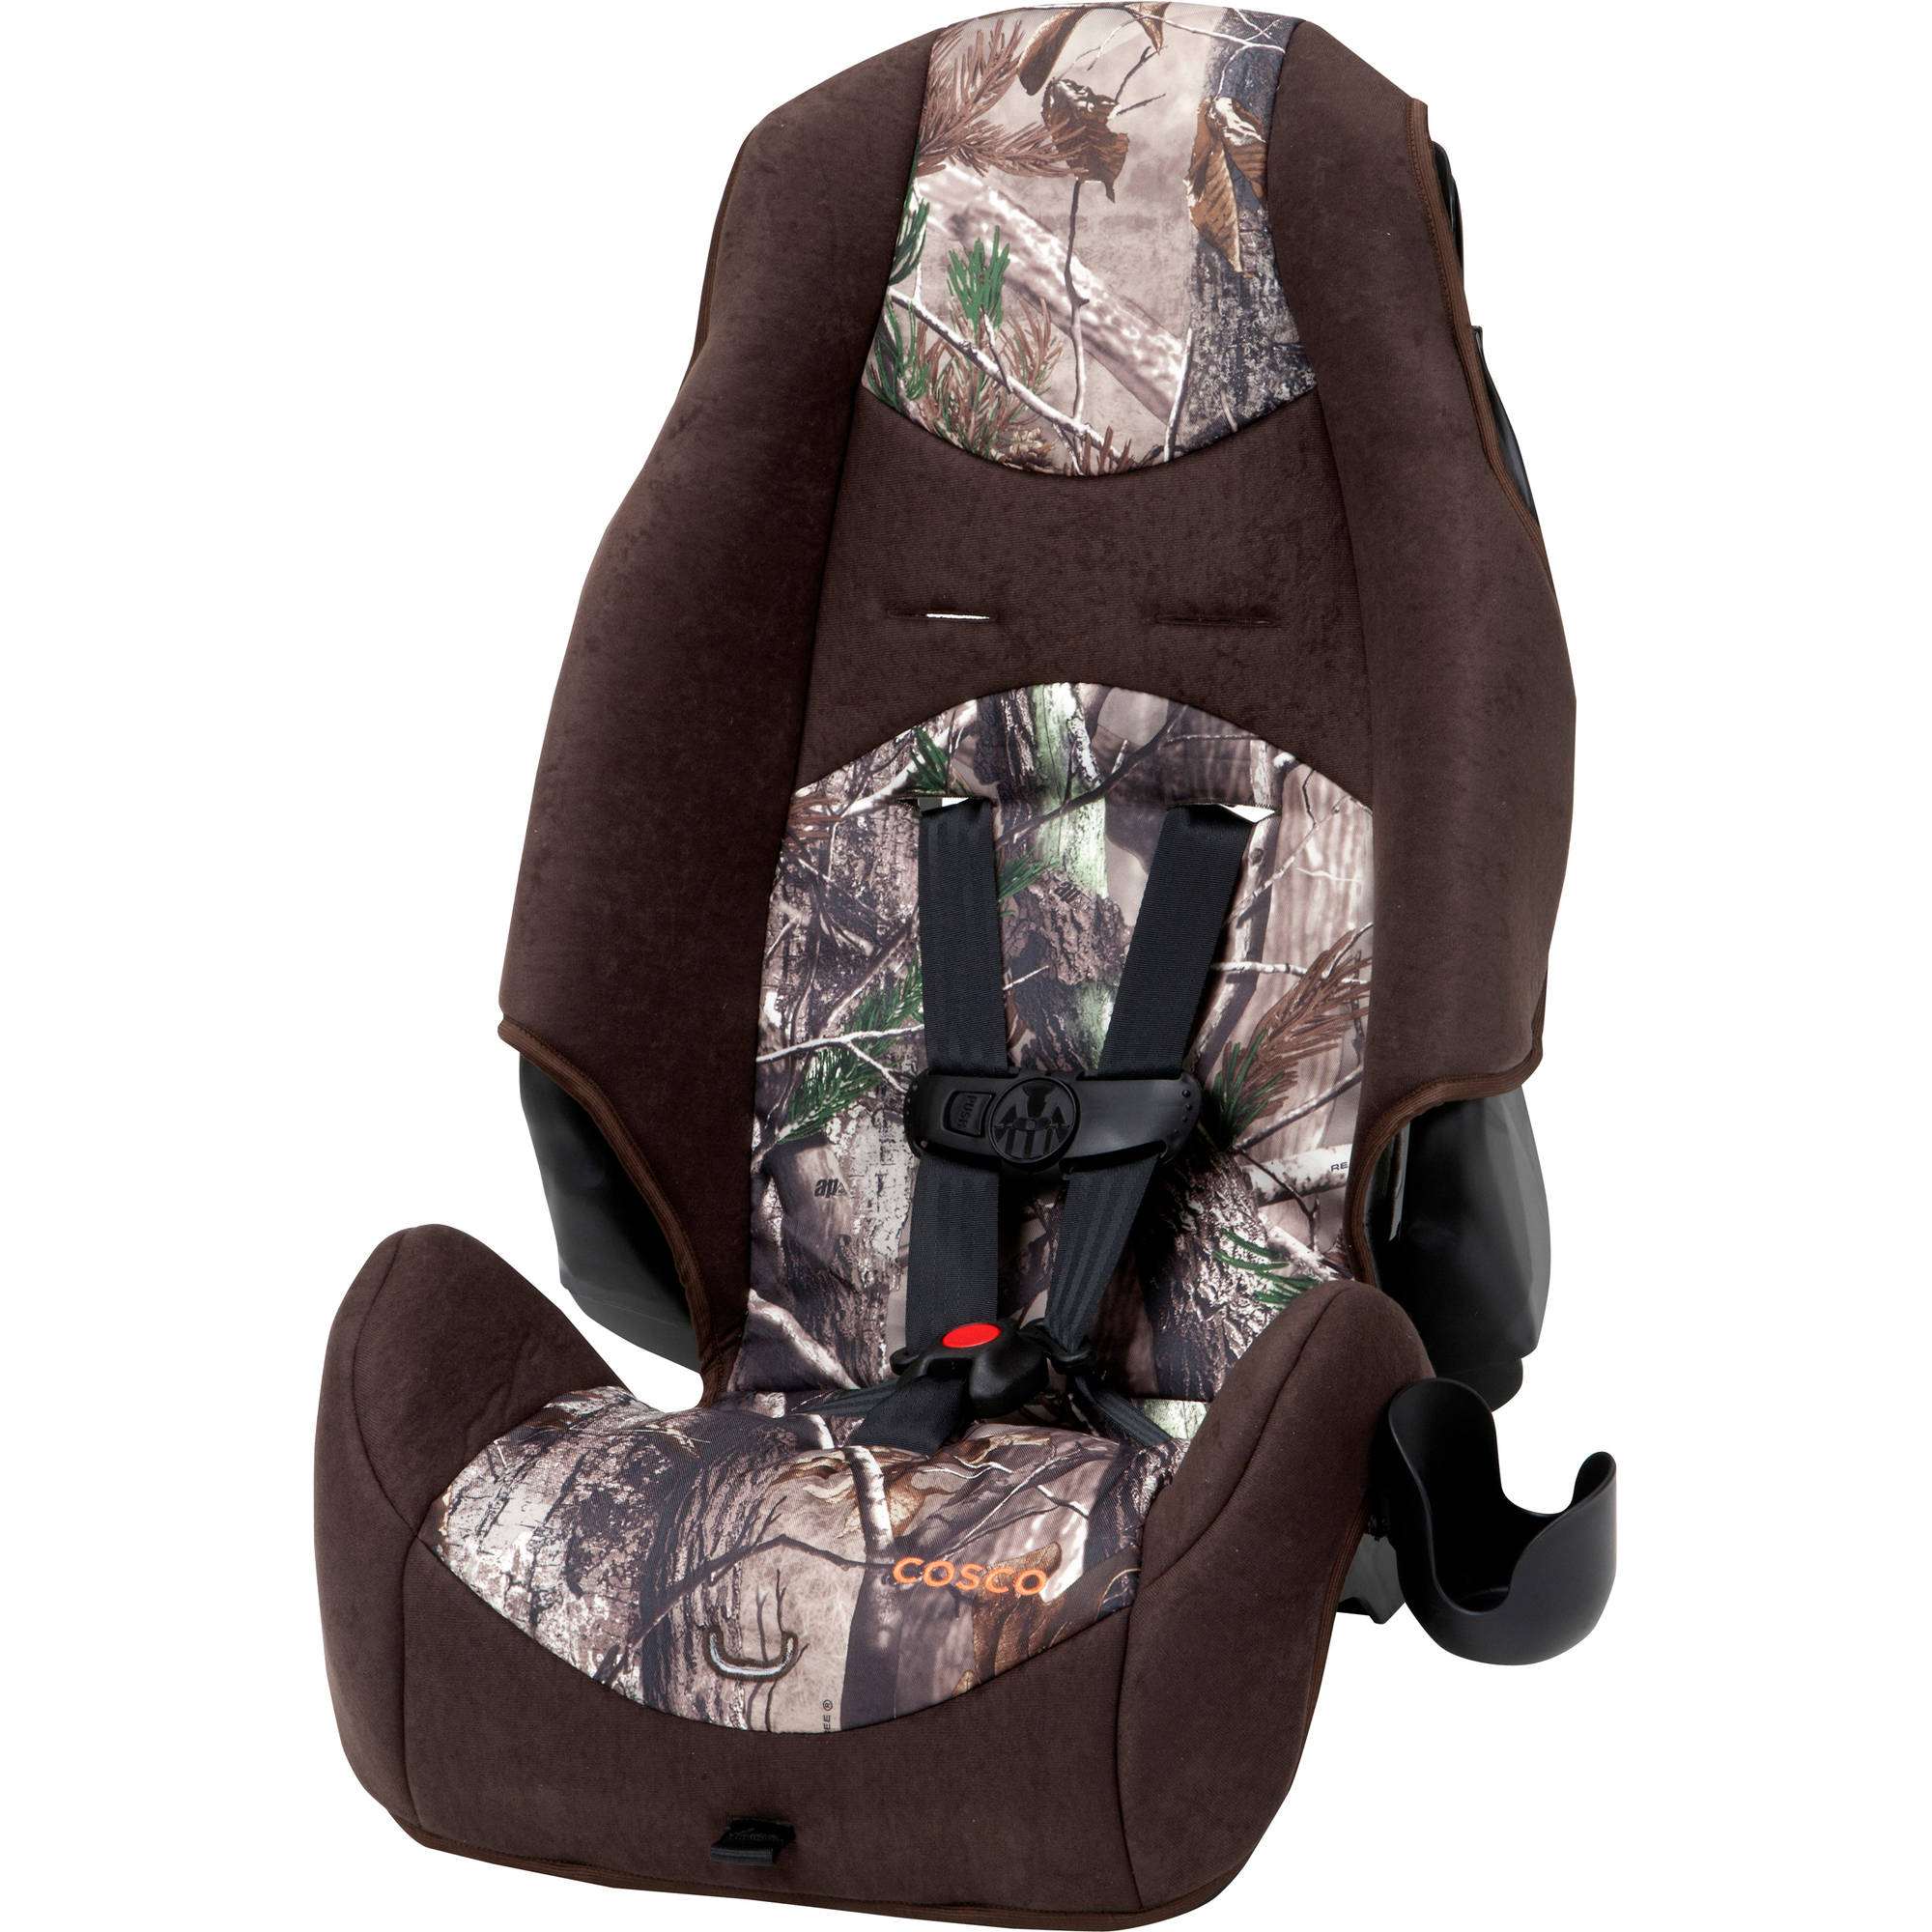 Cosco Highback 2-in-1 Booster Car Seat, Realtree Ap - Walmart.com